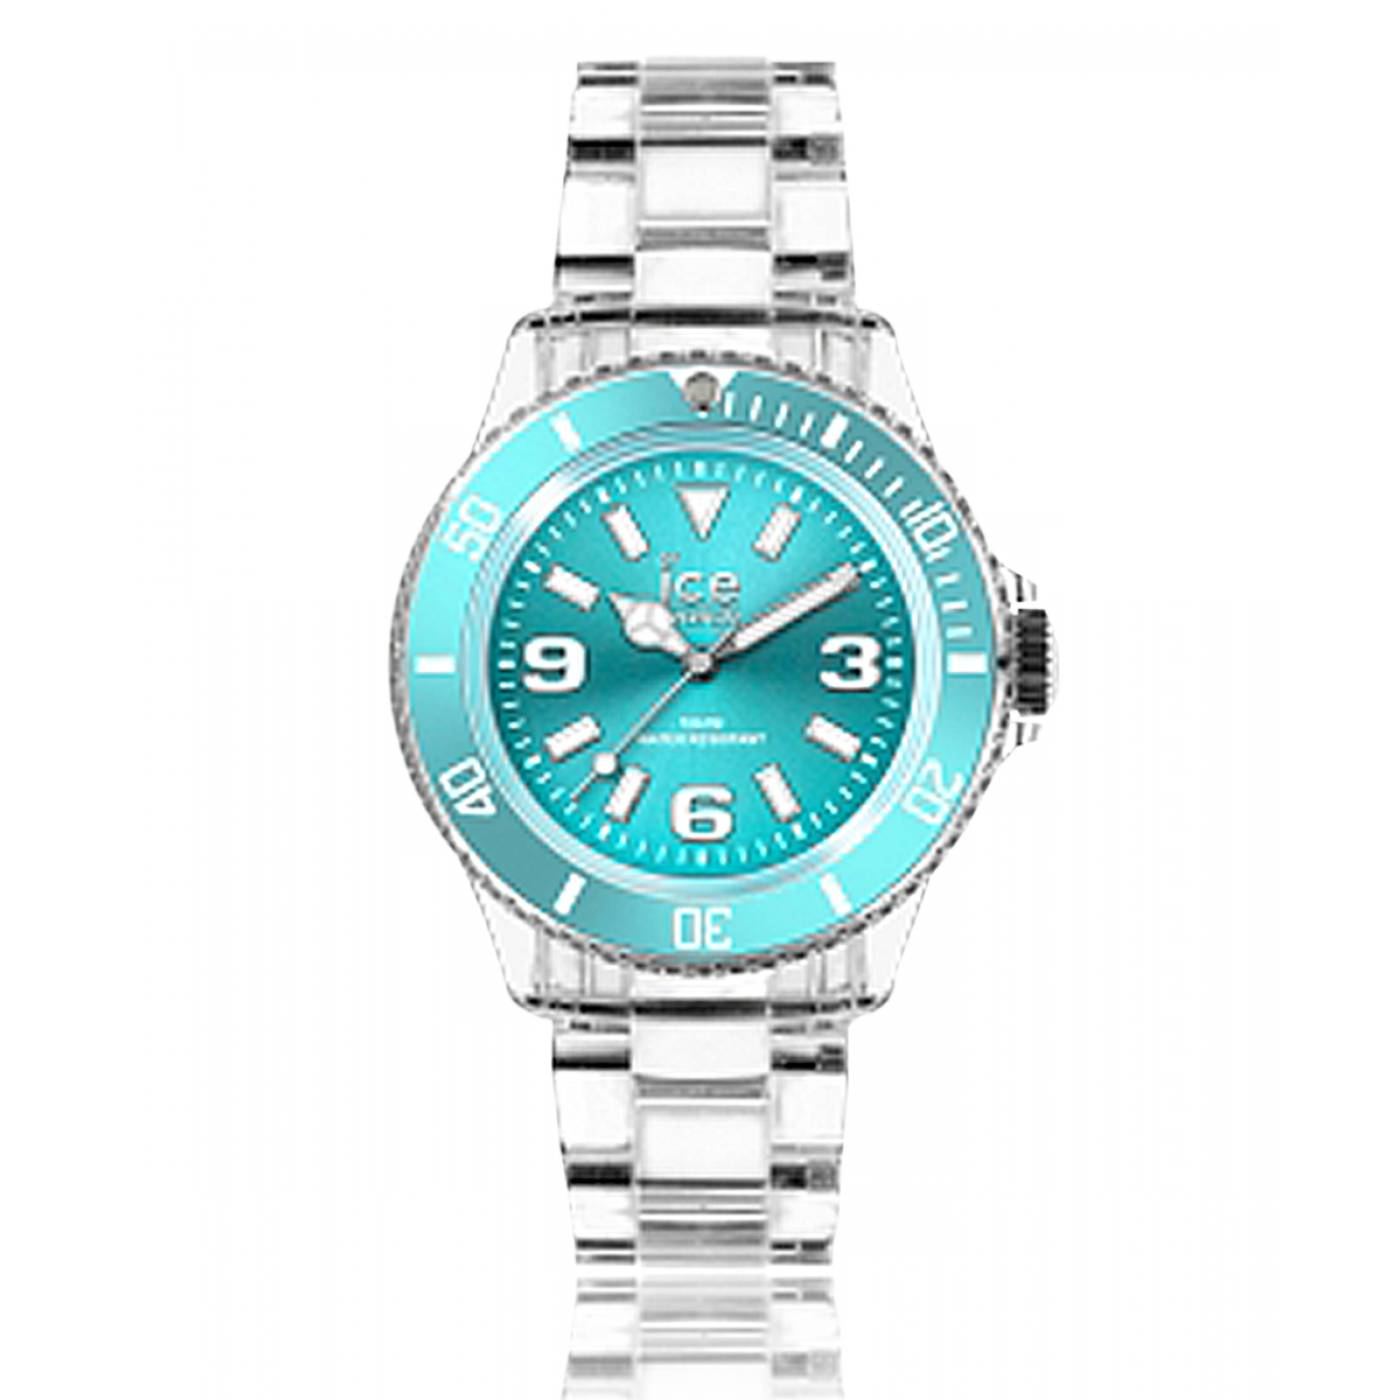 montre homme femme ice pure plastique turquoise ice watch. Black Bedroom Furniture Sets. Home Design Ideas